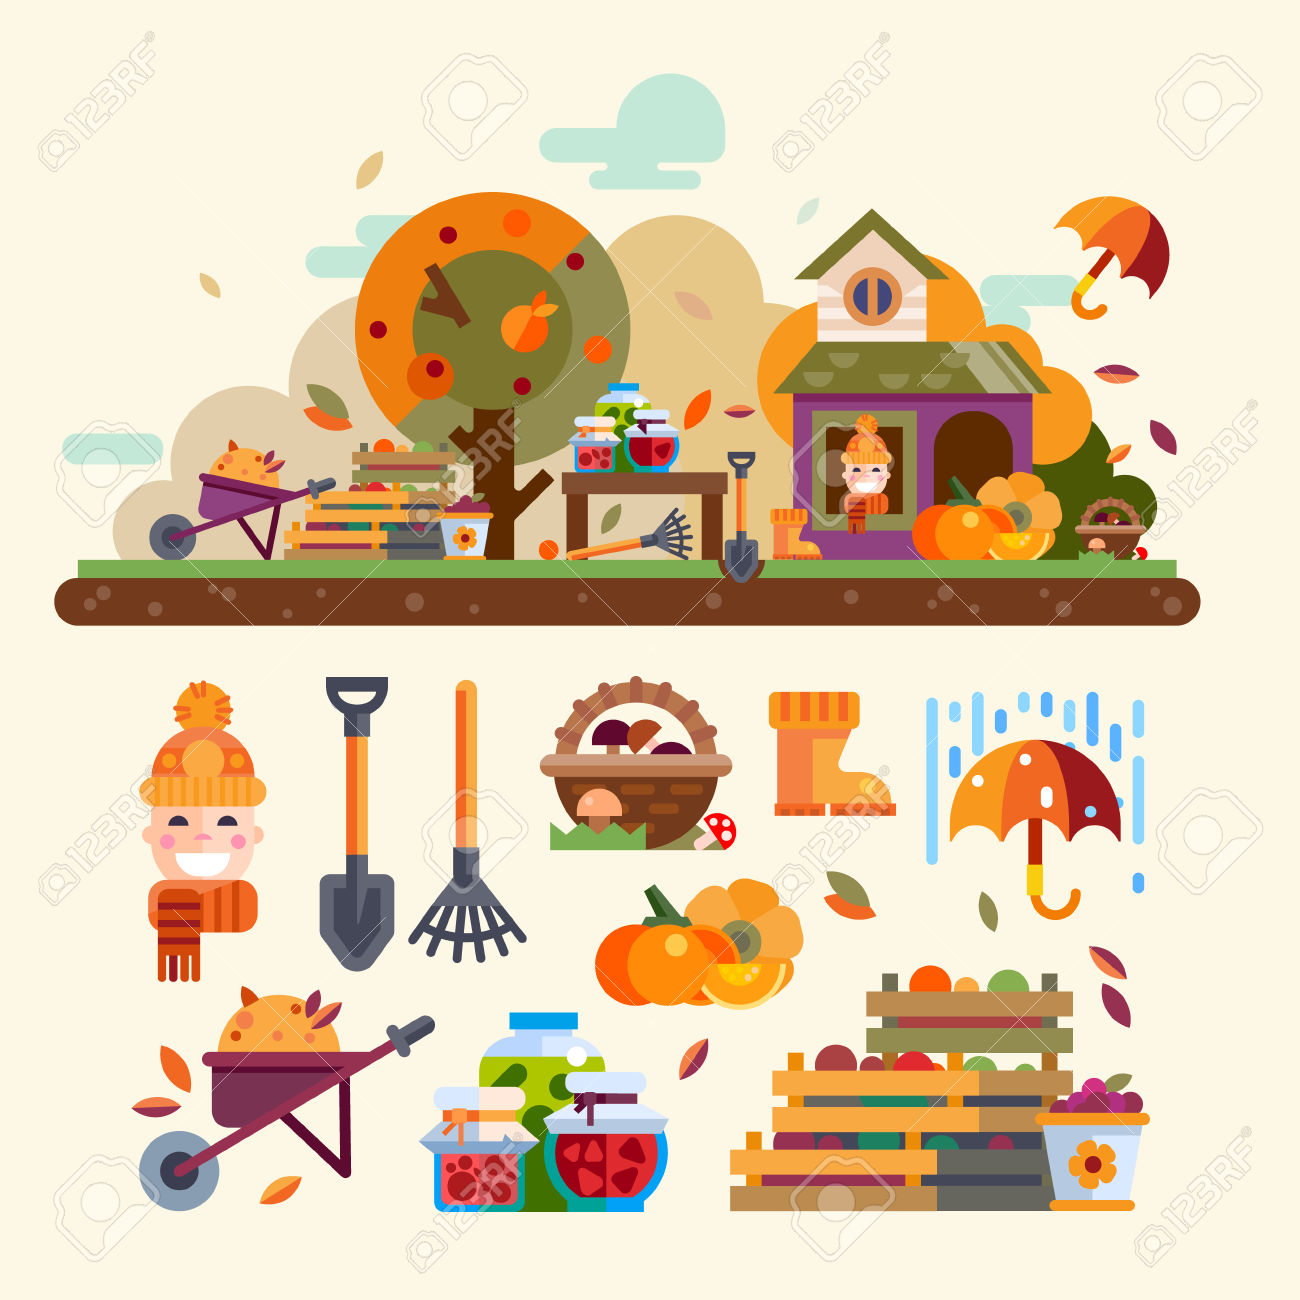 100,390 Harvest Stock Vector Illustration And Royalty Free Harvest.